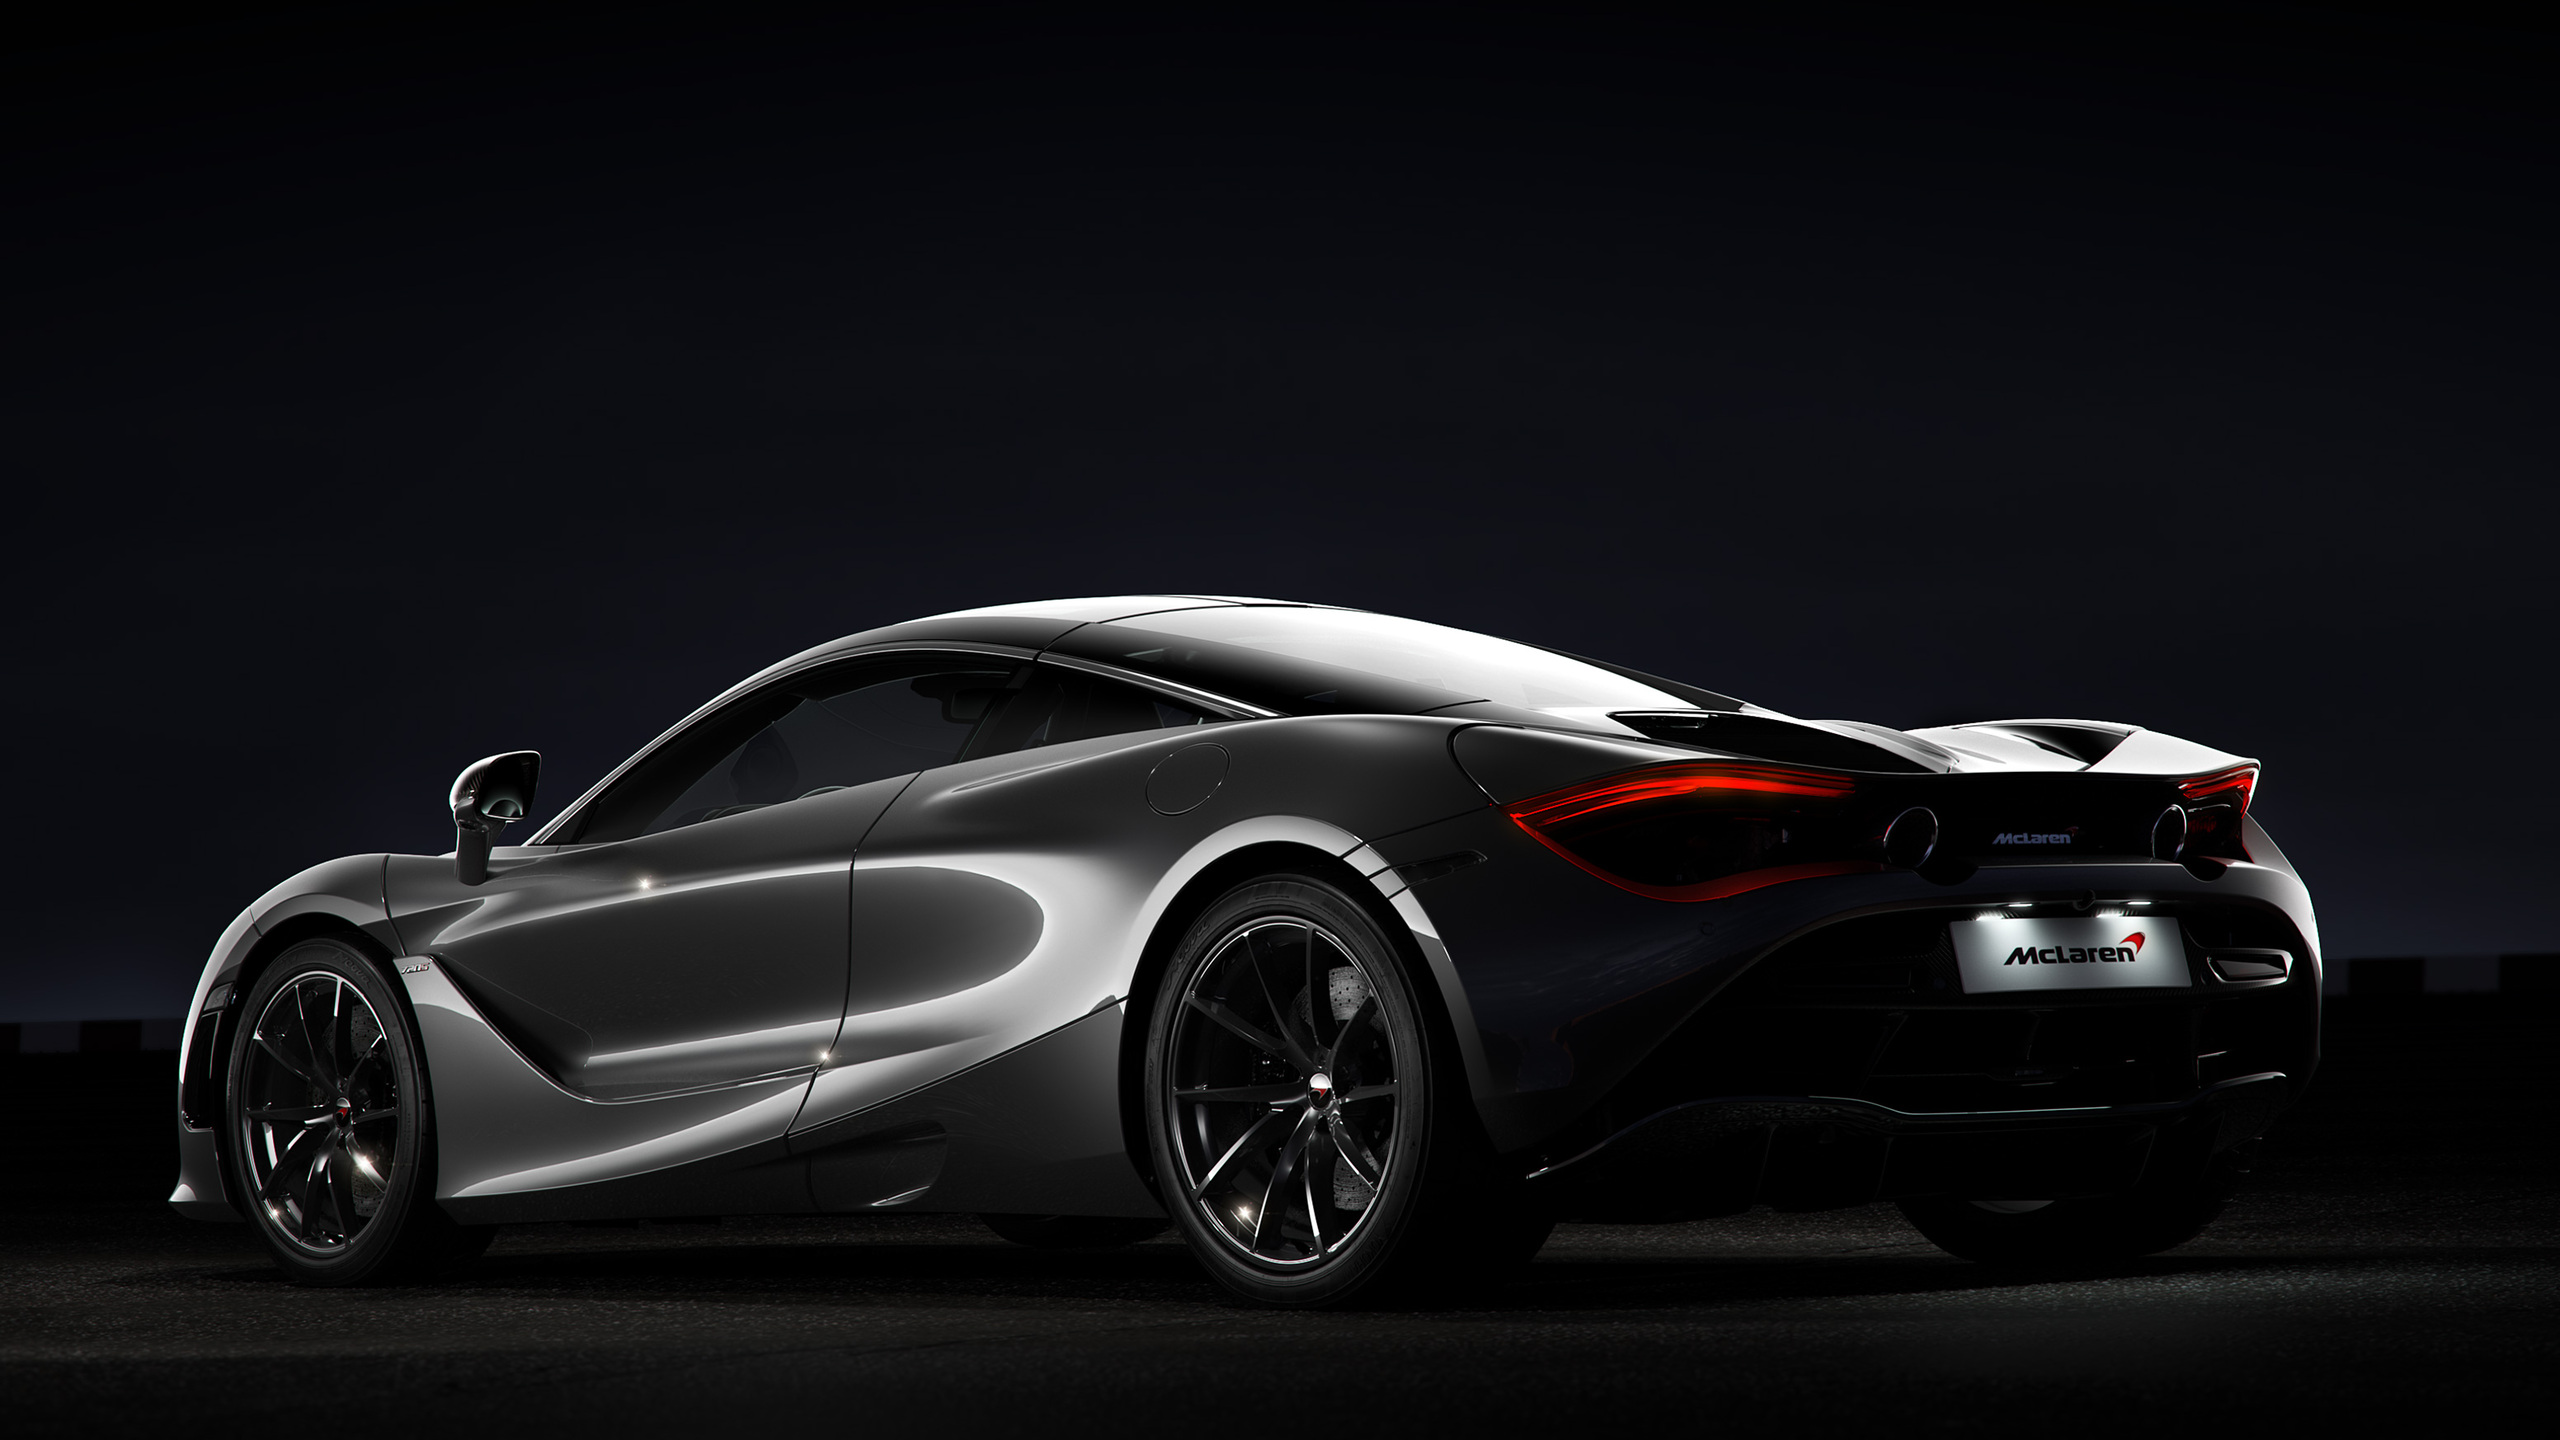 2560x1440 Mclaren 720s 1440p Resolution Hd 4k Wallpapers Images Backgrounds Photos And Pictures